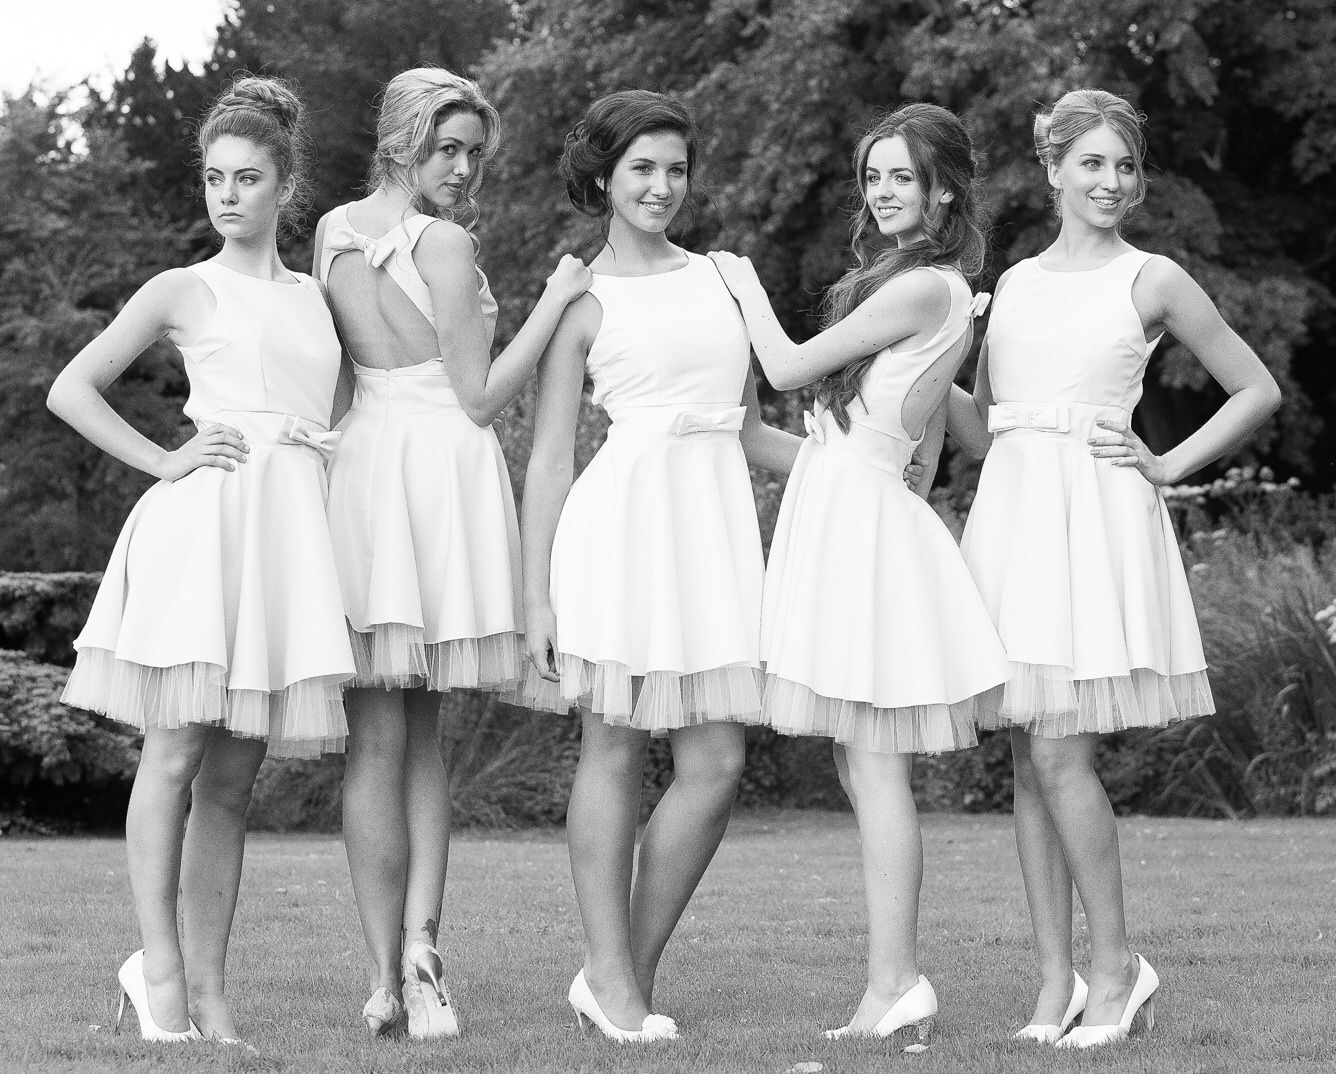 Bespoke bridesmaid dresses katefearnleyboutique vintage bespoke bridesmaid dresses katefearnleyboutique vintage wedding bridal ombrellifo Gallery